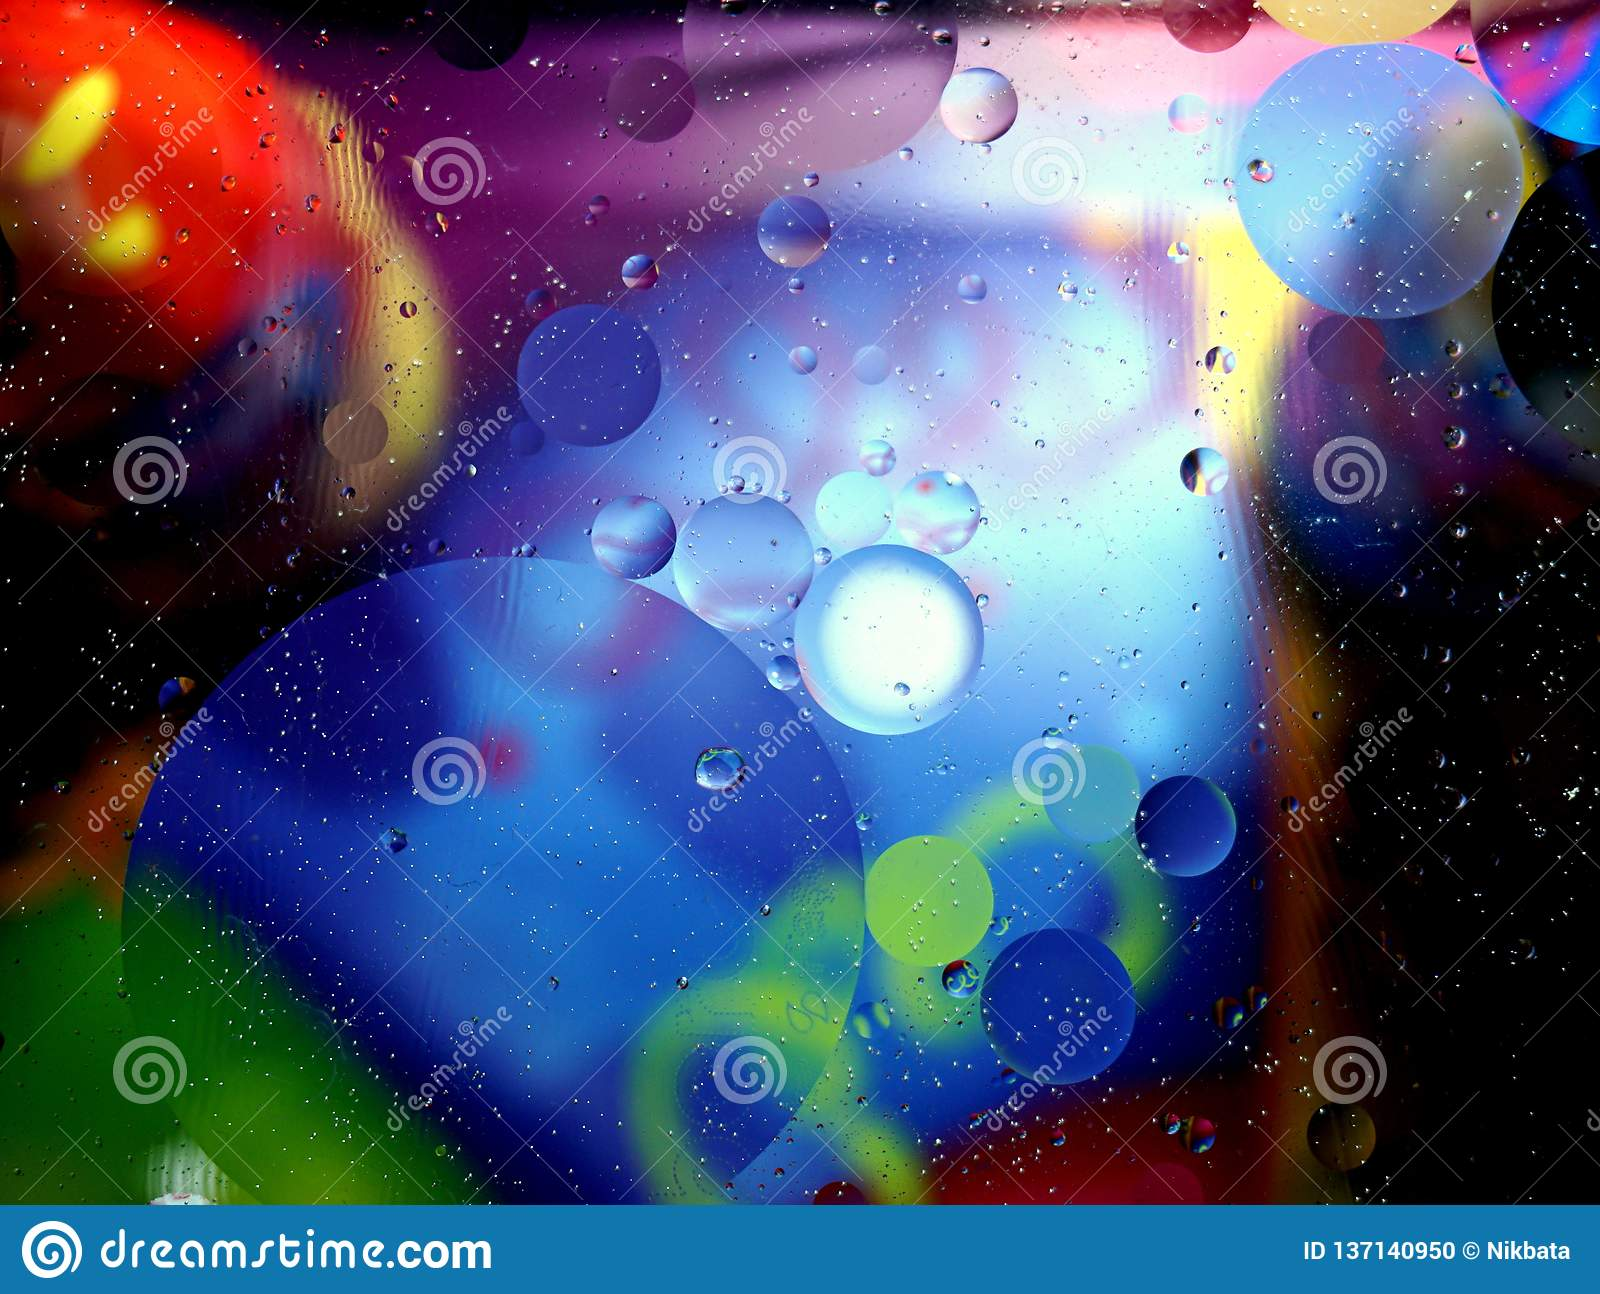 Colorful abstract background from many bubbles